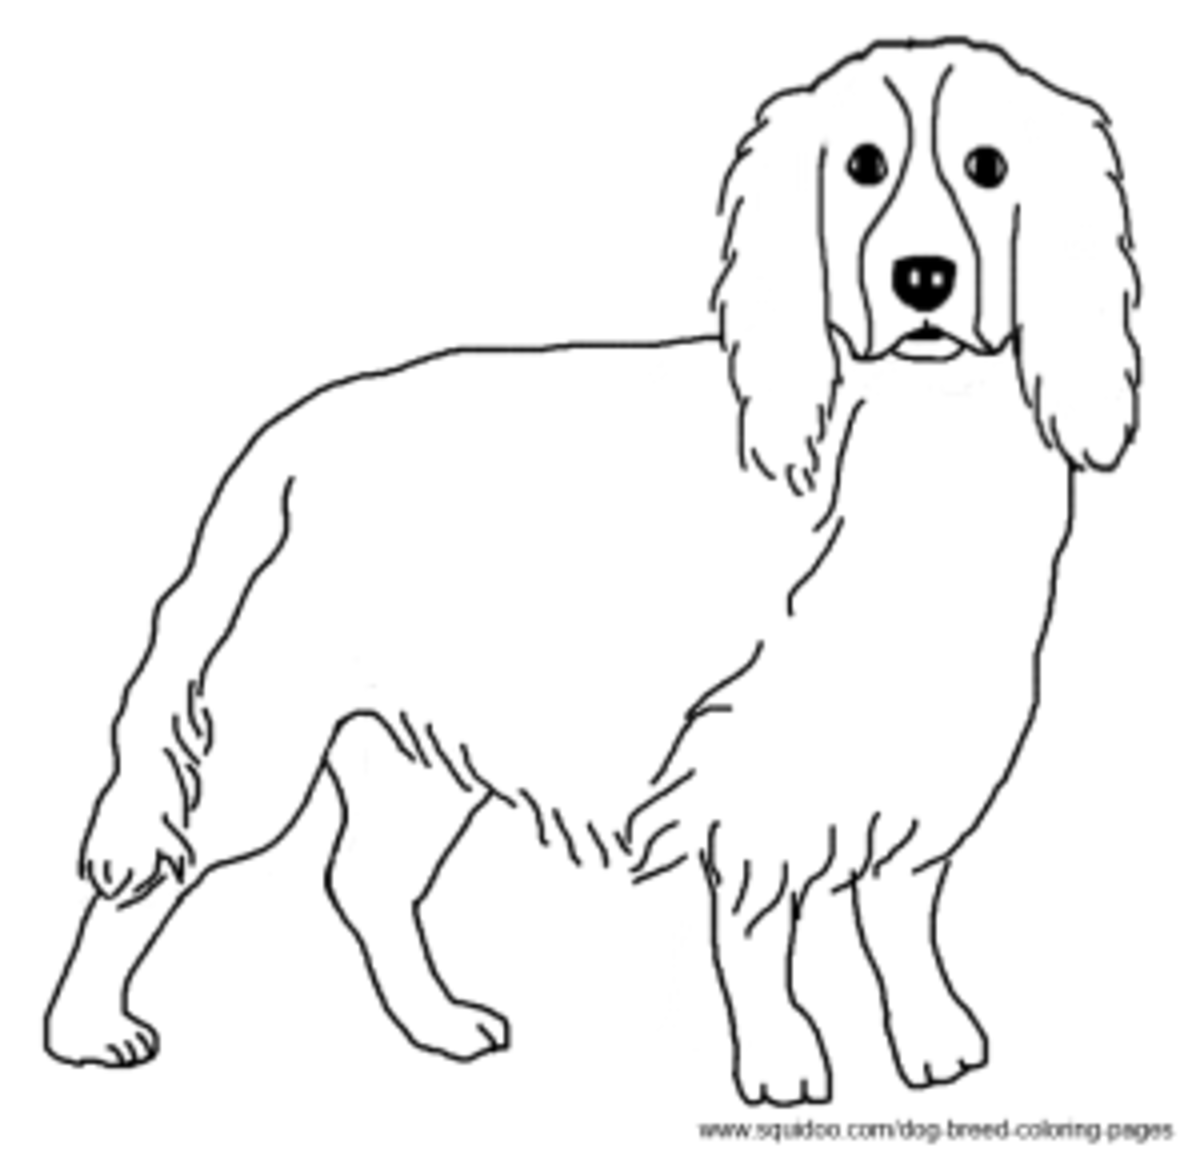 Springer Spaniel coloring page